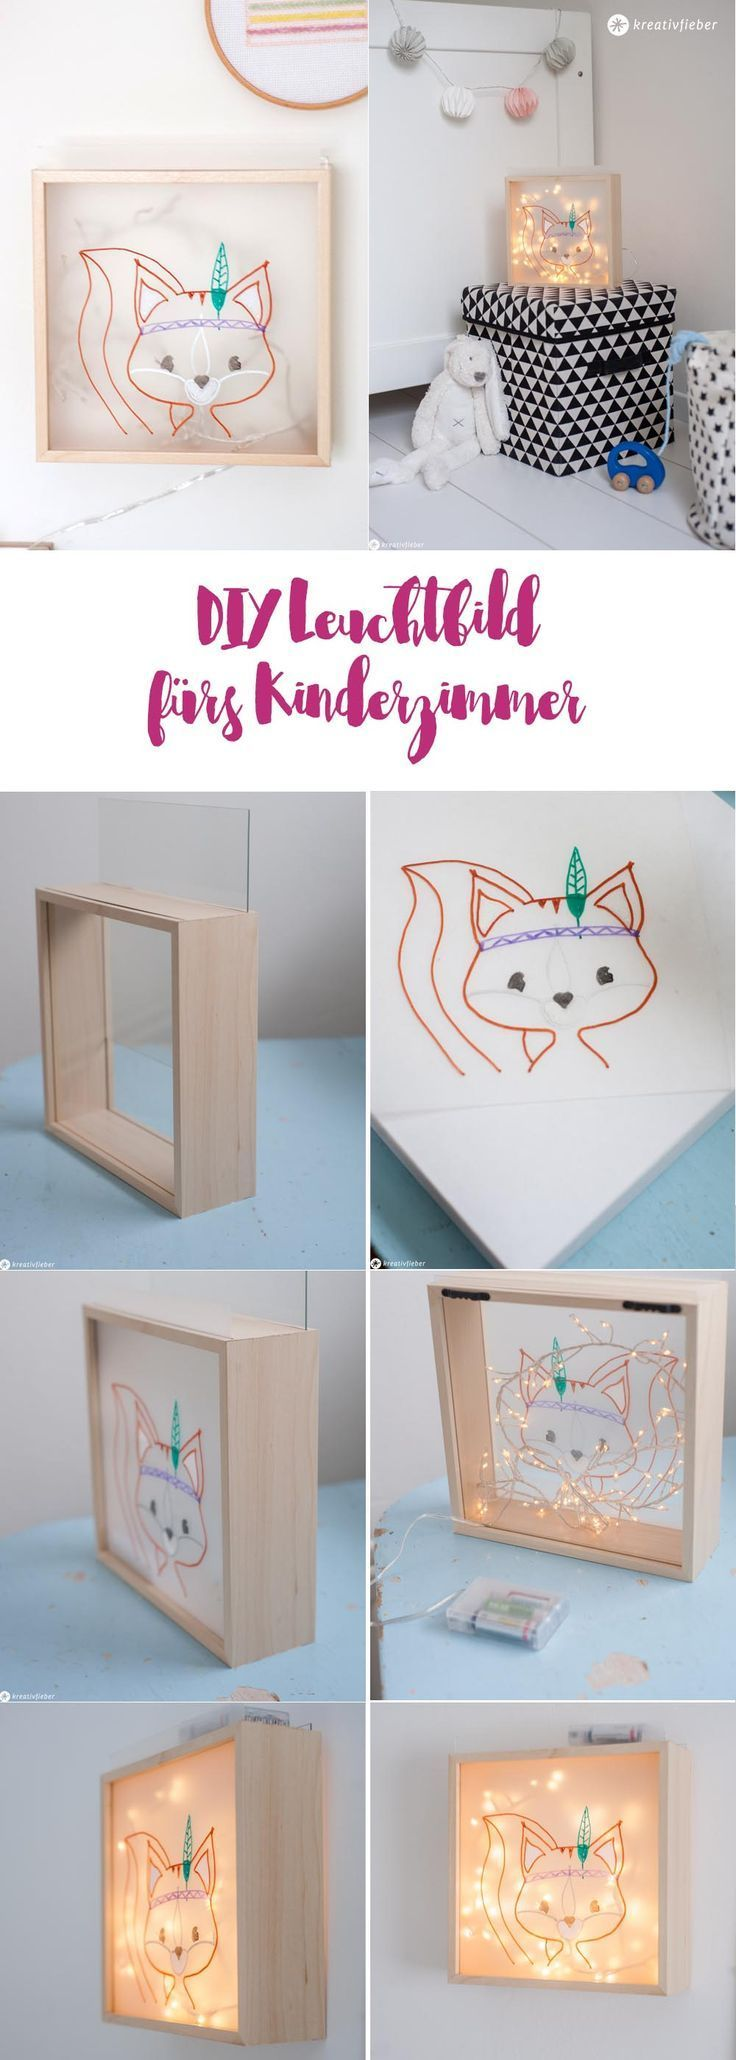 DIY lighting picture for the children's room